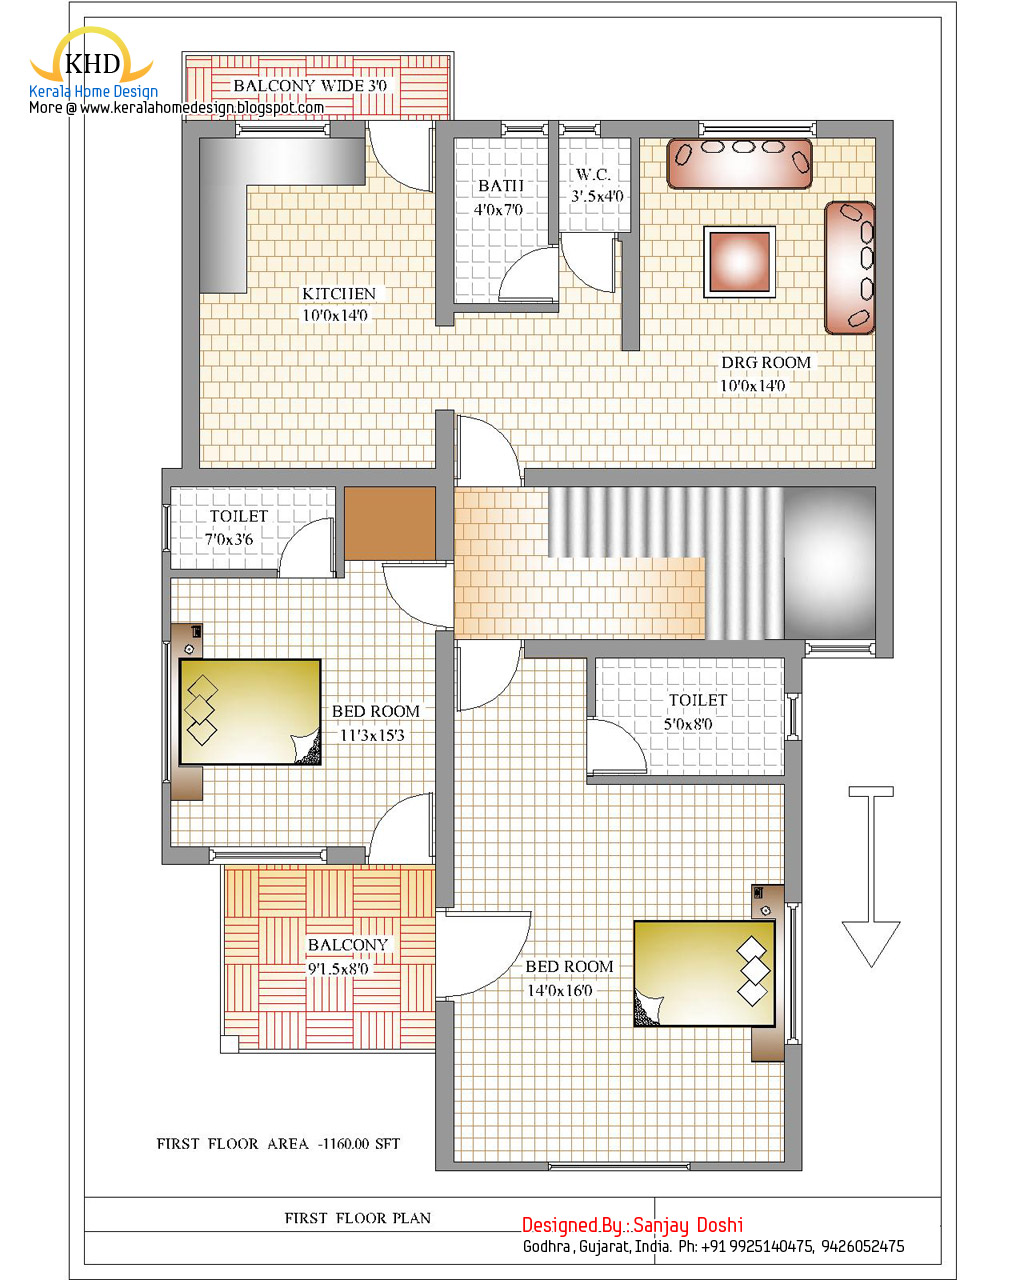 Duplex house plan and elevation 2310 sq ft indian home decor House plans and designs